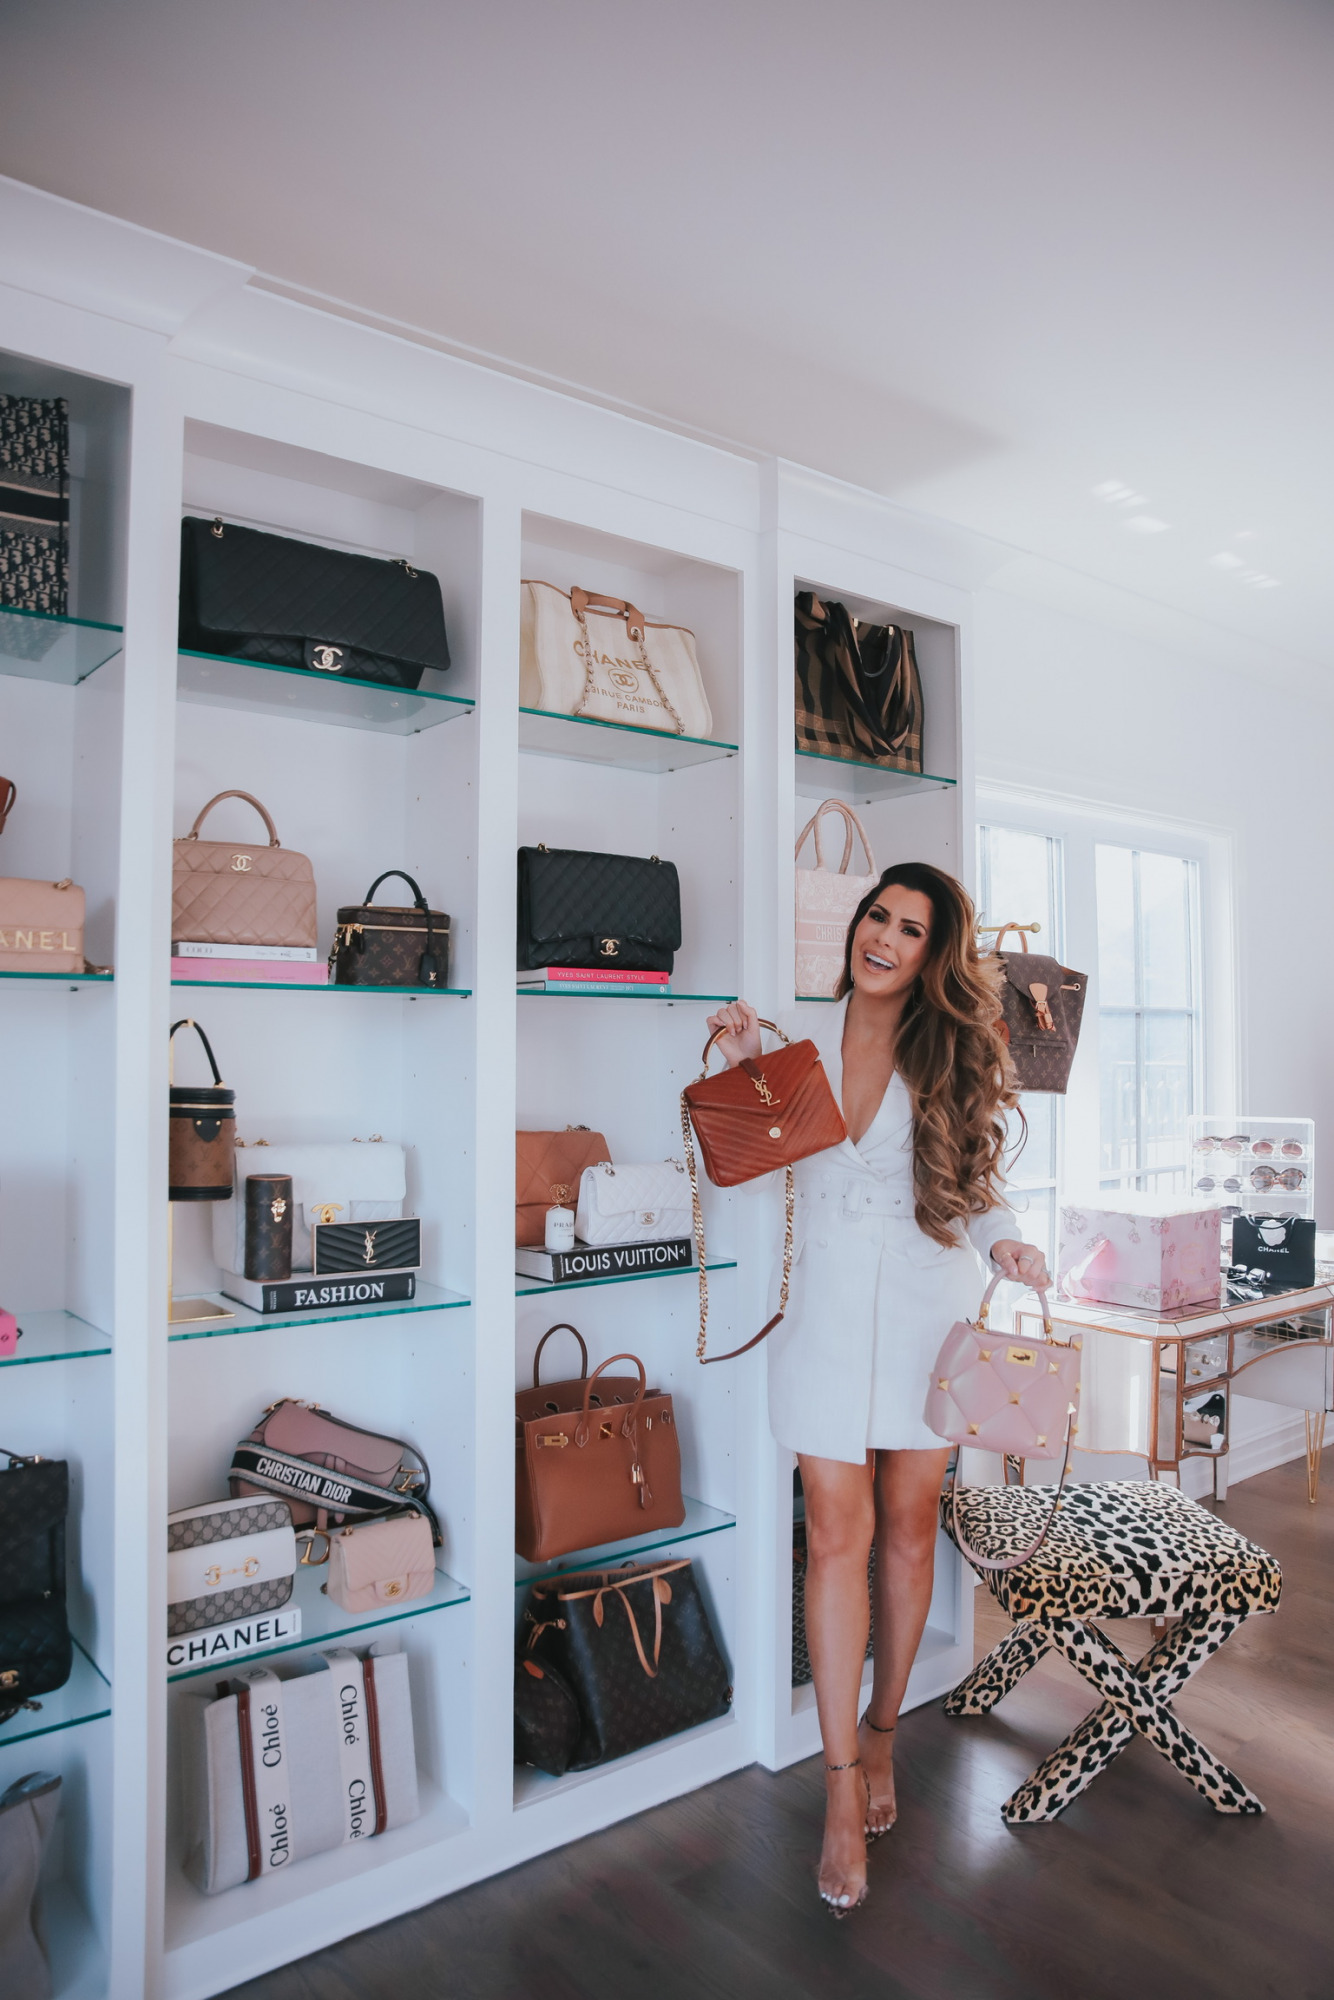 Emily Ann Gemma, Emily Gemma Closet, Emily Gemma Handbags, Two Story Closet, How to Display Handbags, Ebay Luxury Handbags, Pre-Loved Handbags, Chanel, Gucci, Valentino, Louis Vuitton   Instagram Recap by popular US life and style blog, The Sweetest Thing: image of Emily Gemma wearing a white misguided blazer dress and Giavanti Rossi heels while standing next to her designer bags.